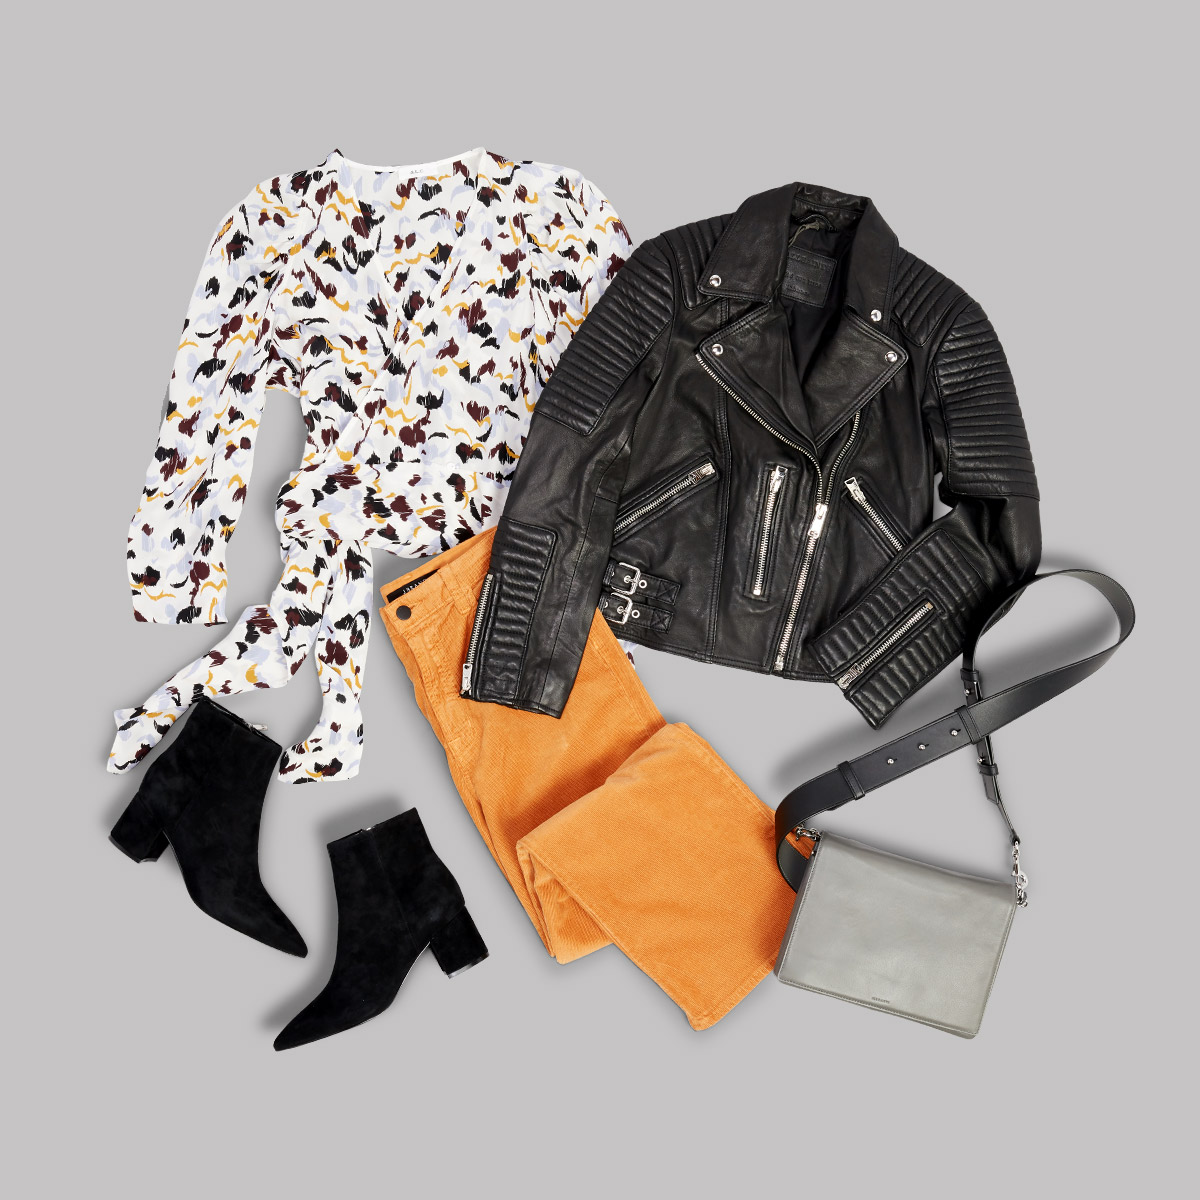 Women's outfit with gold pants, white shirt with floral print, black boots, grey purse and a black leather jacket laid flat on a grey background.